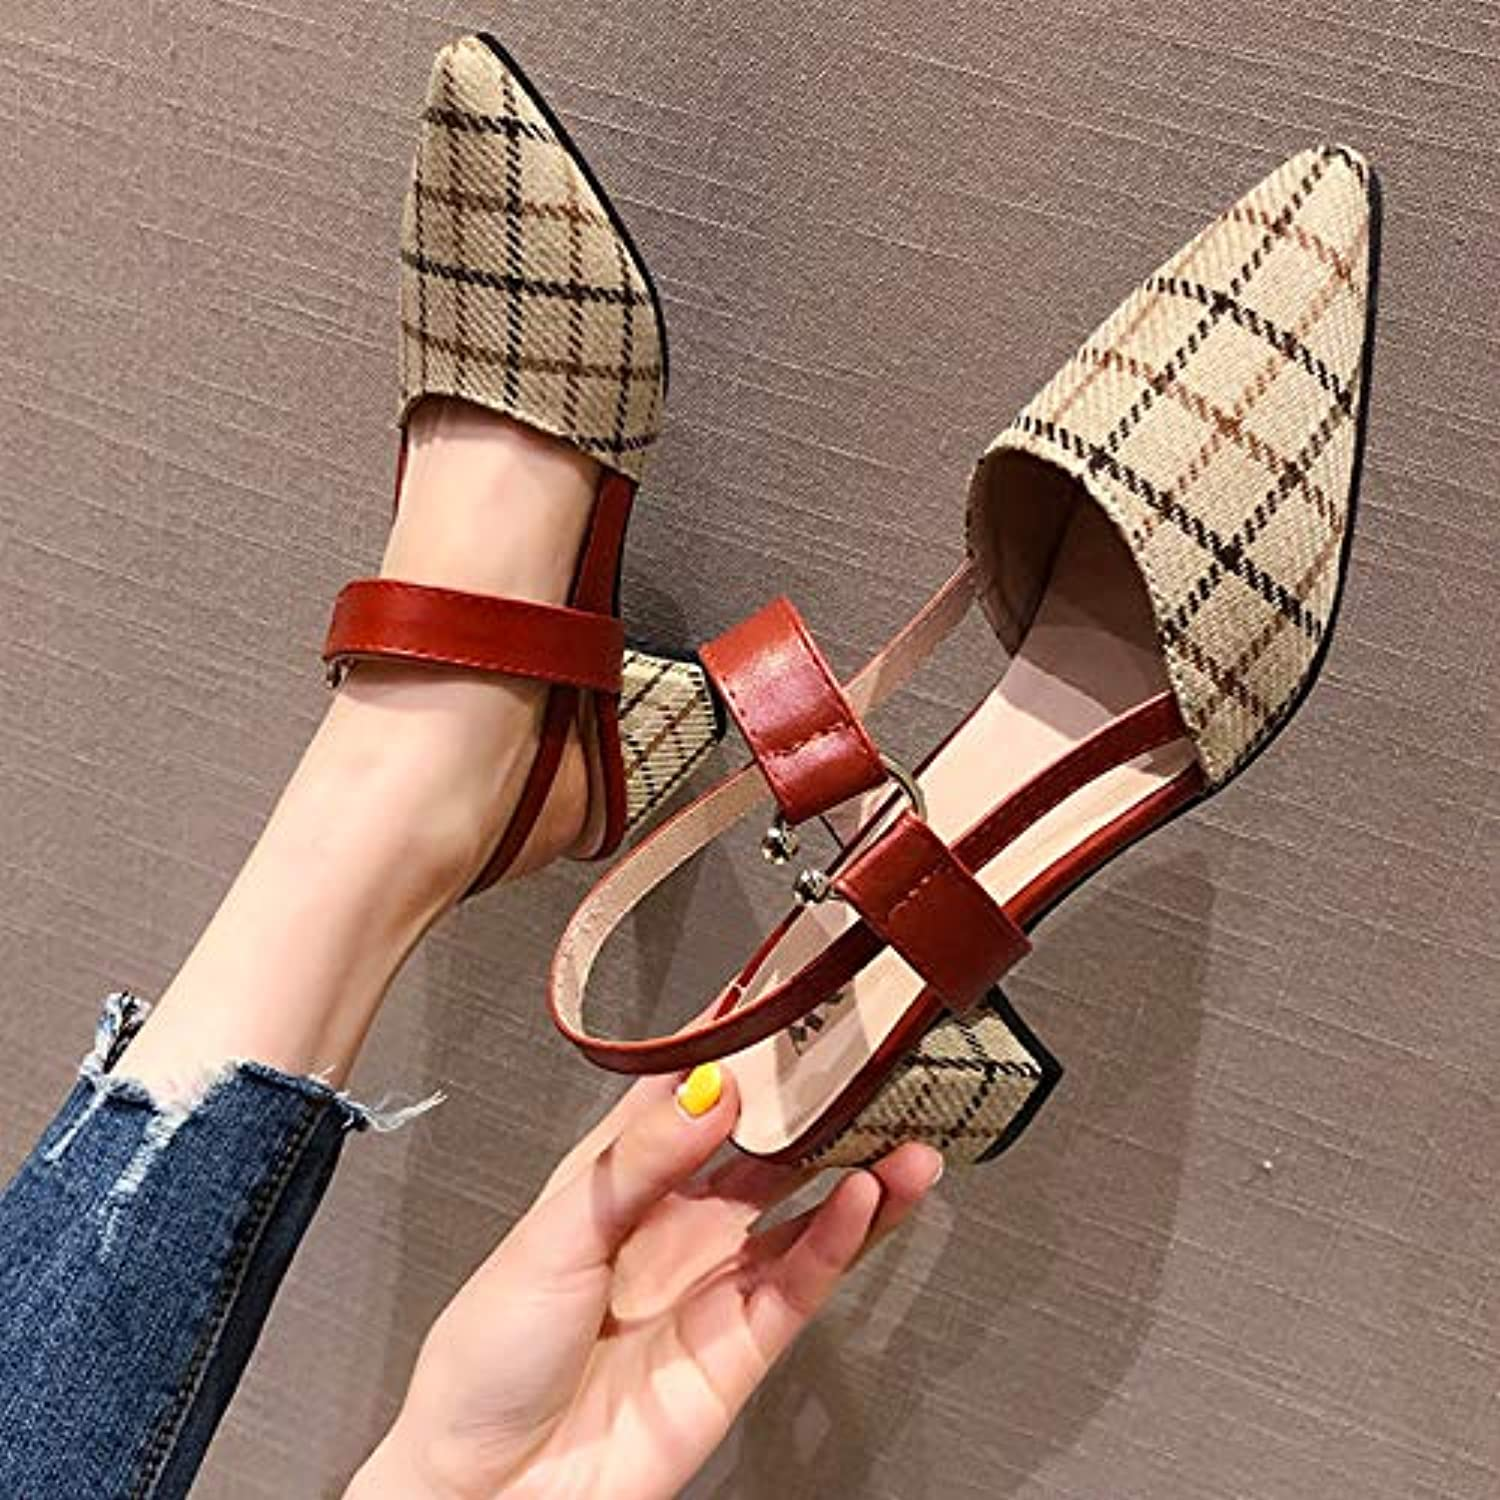 Sandals Female 2019 Summer New Thick with Pointed French Girls high Heels Korean Version of The Word Buckle Fairy shoes,A,US6 EU36 UK4 CN36